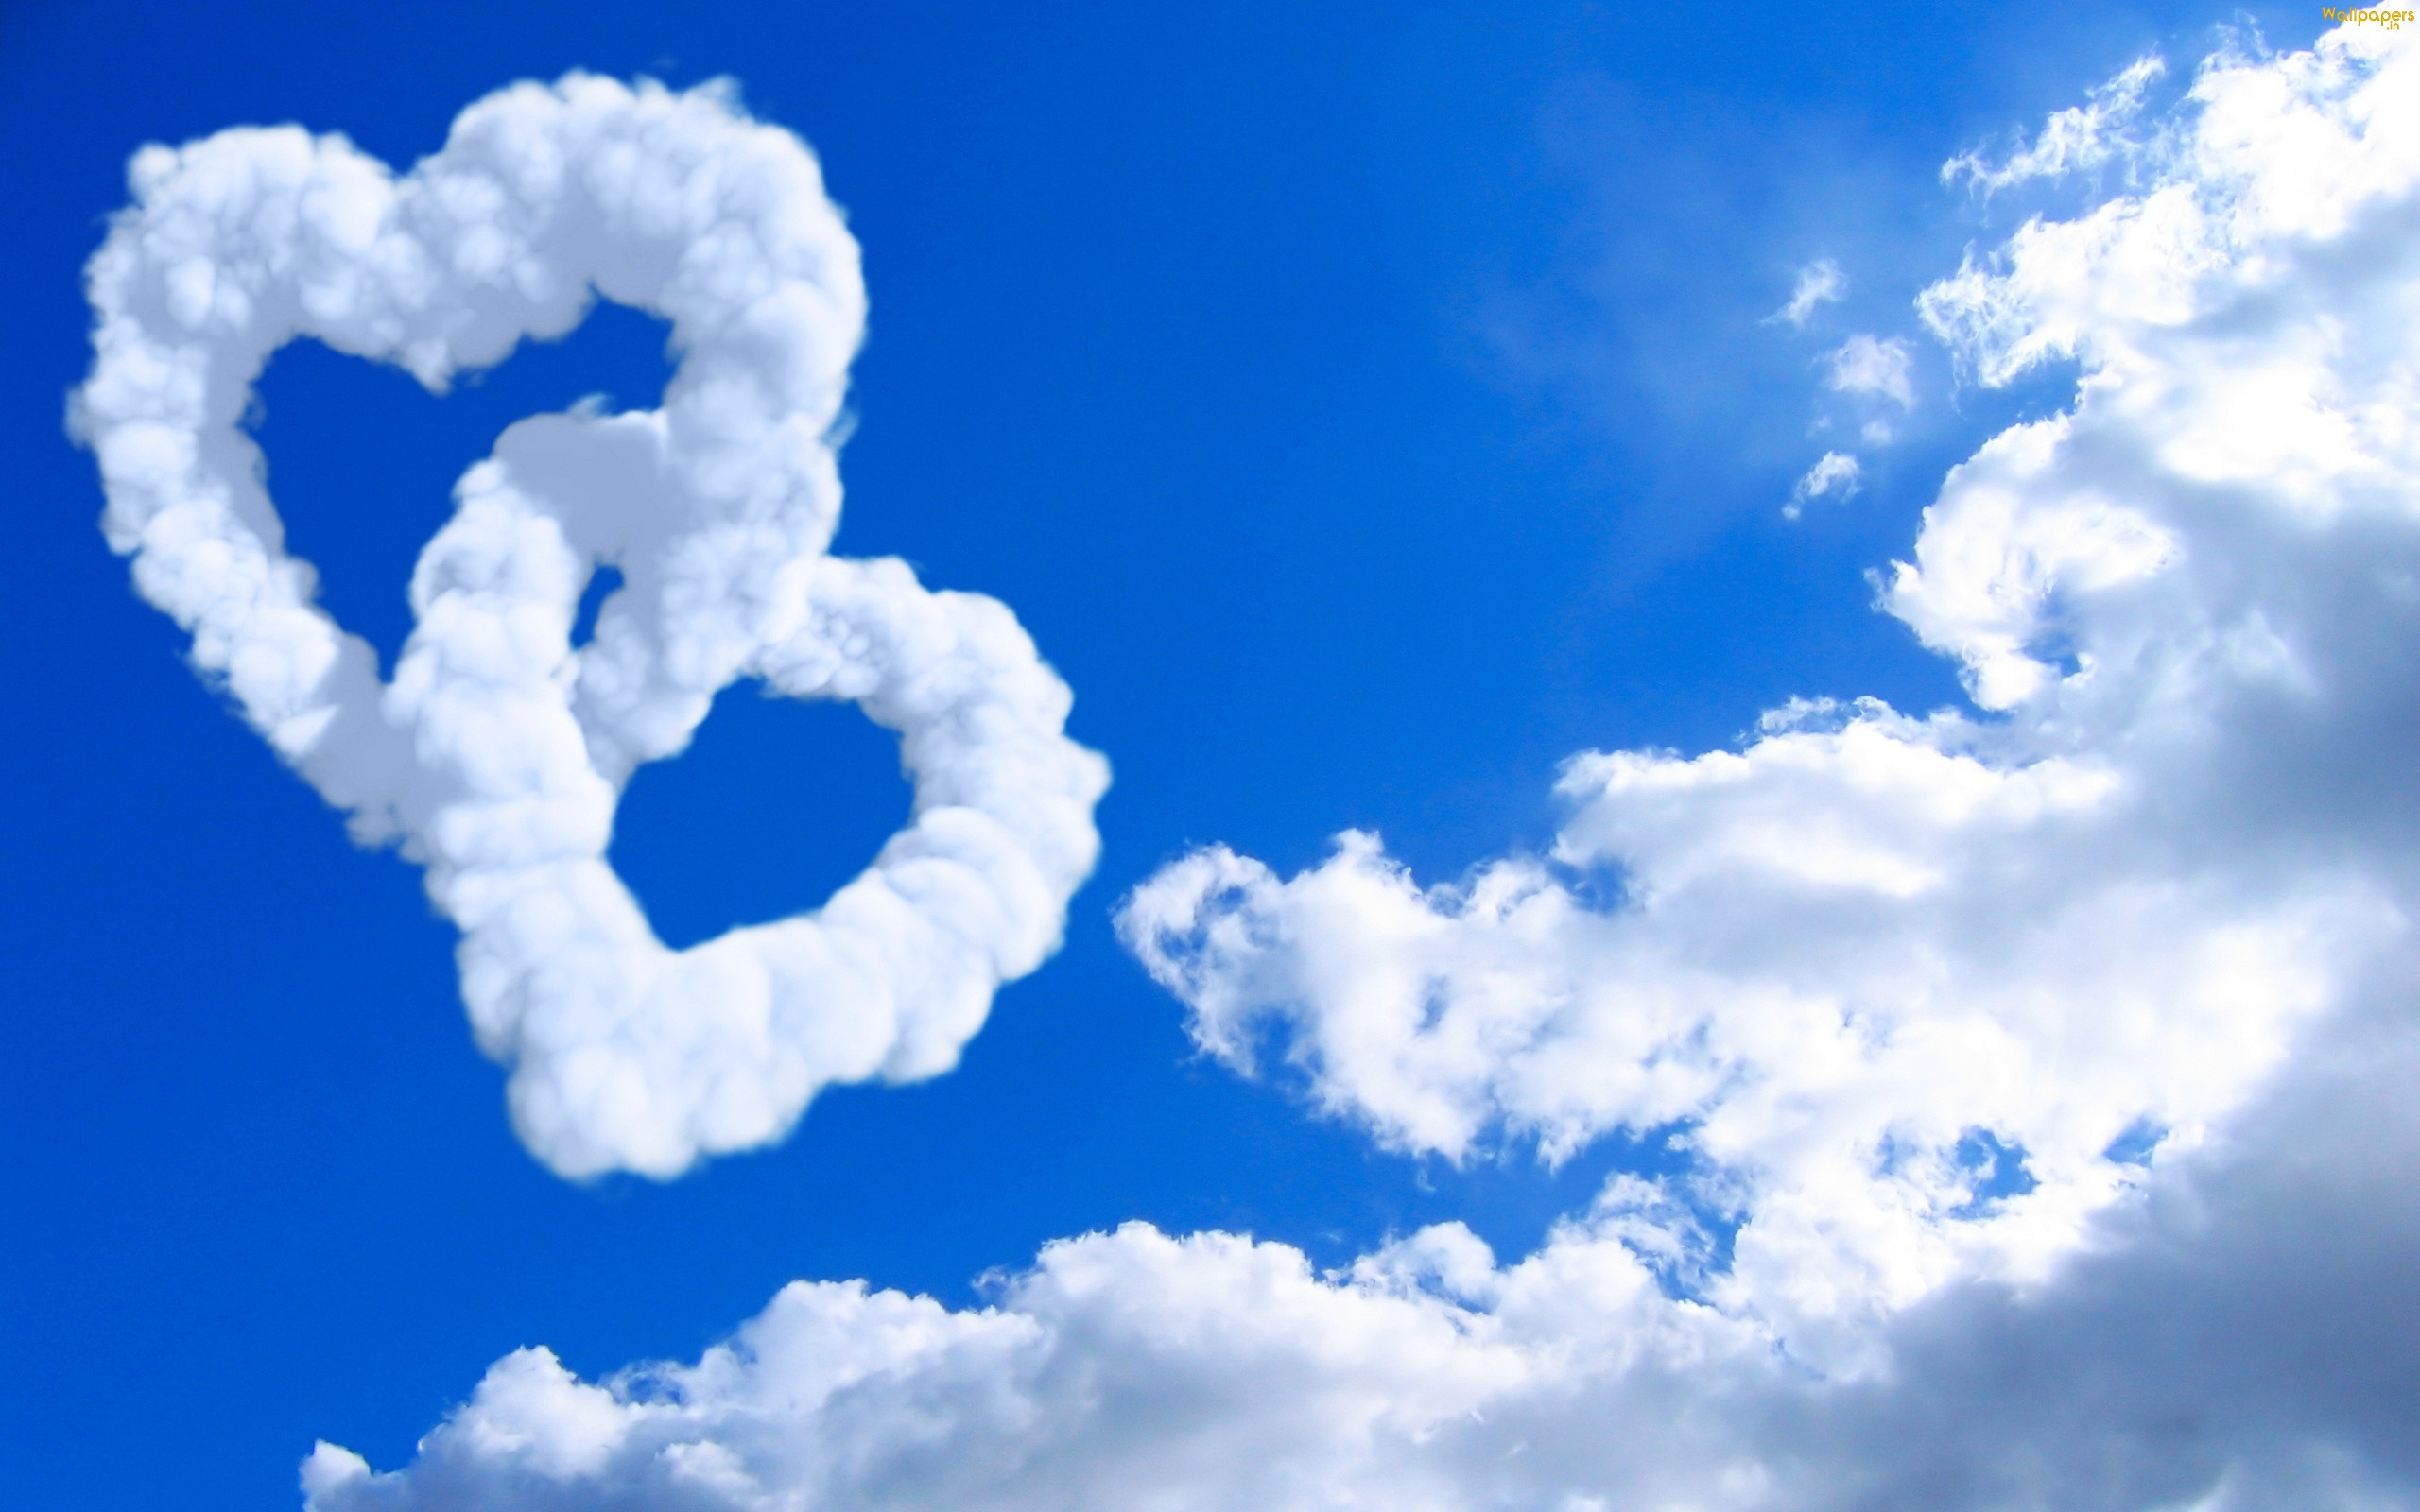 Two Hearts in The Sky